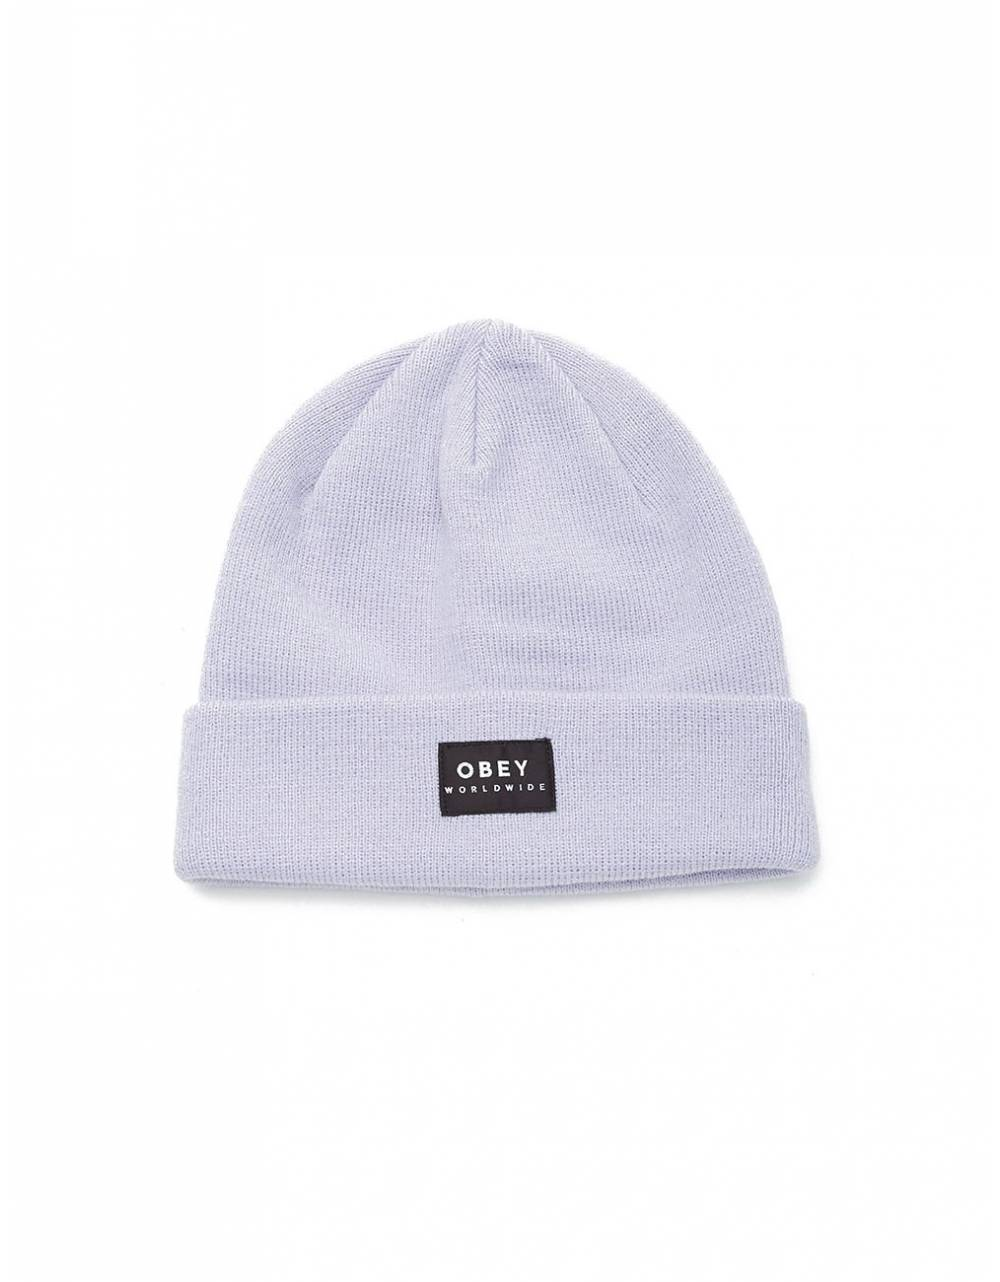 Obey Woman vernon beanie II - periwinkle obey Beanie 35,00€